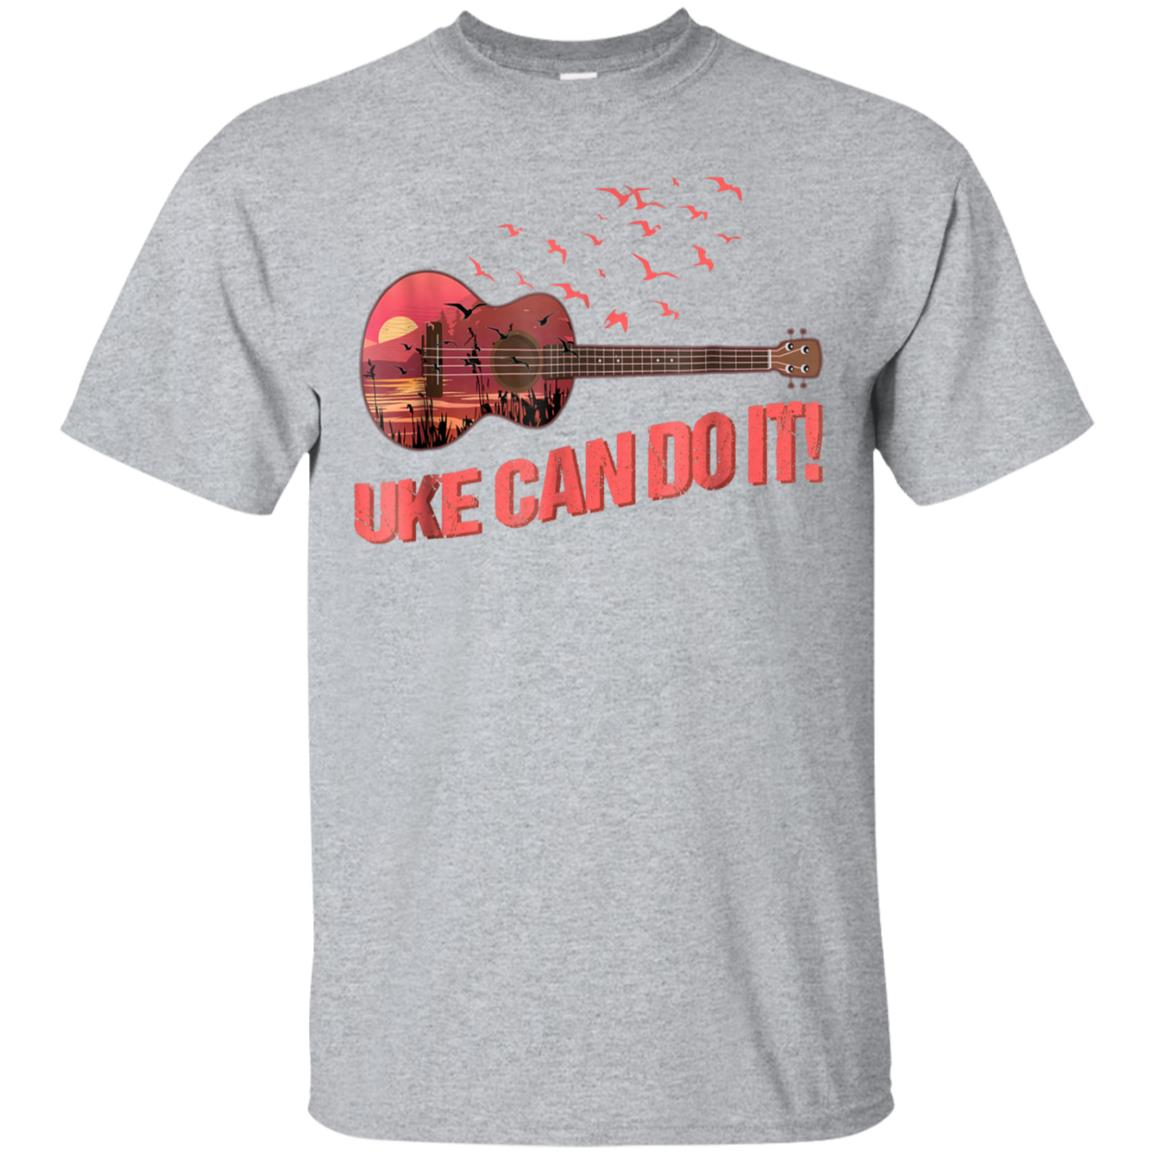 UKE TShirt Uke Can Do It Lake Sunset Birds Scenic Ukulele 99promocode